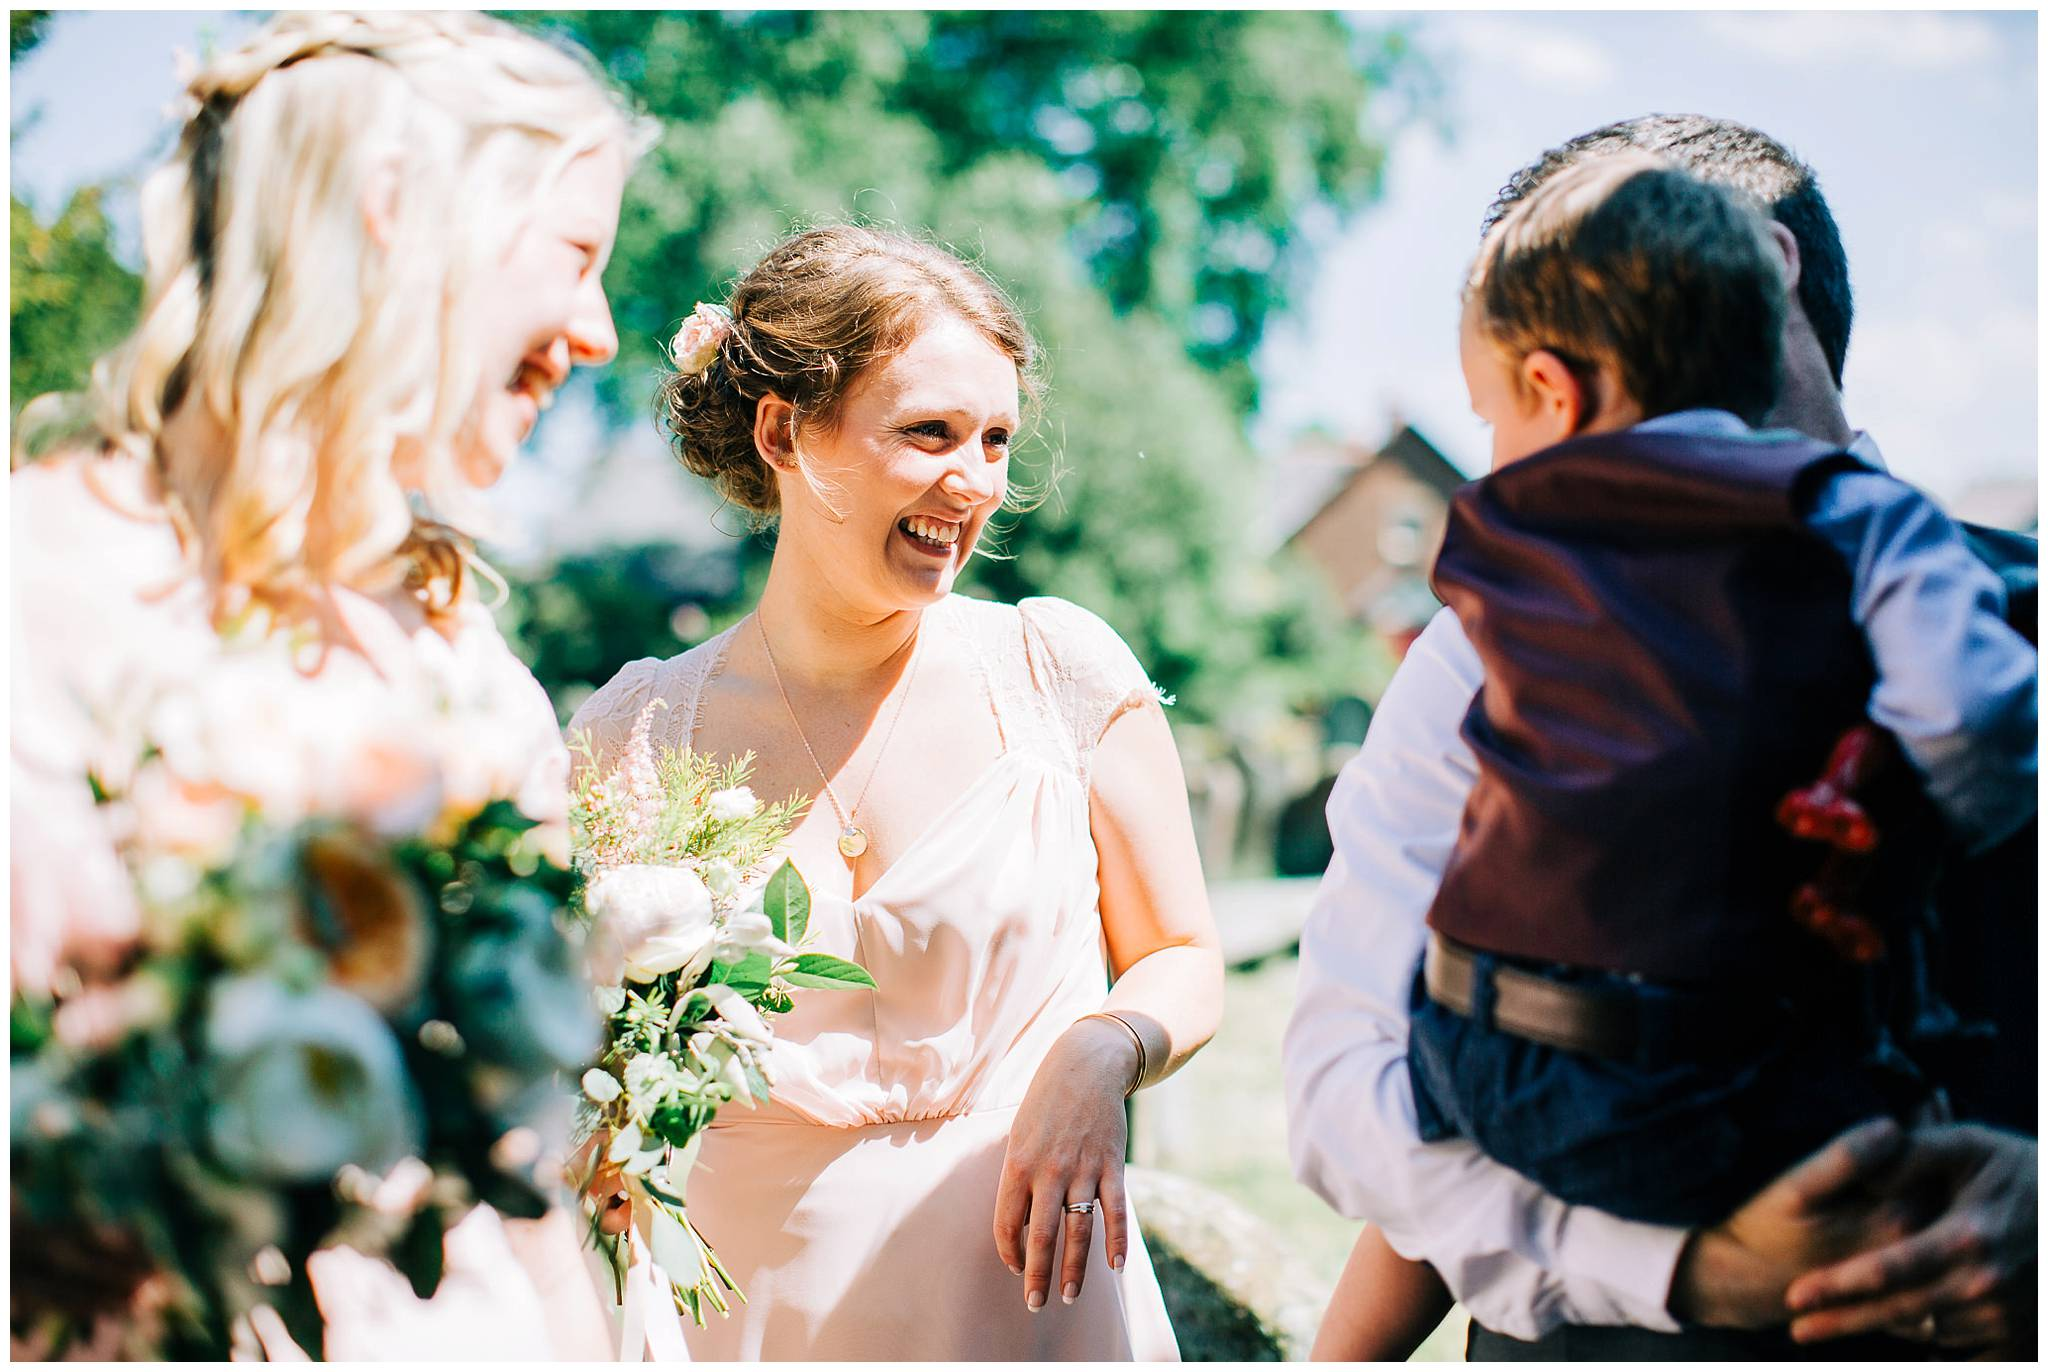 another bridesmaid looking at her child smiling